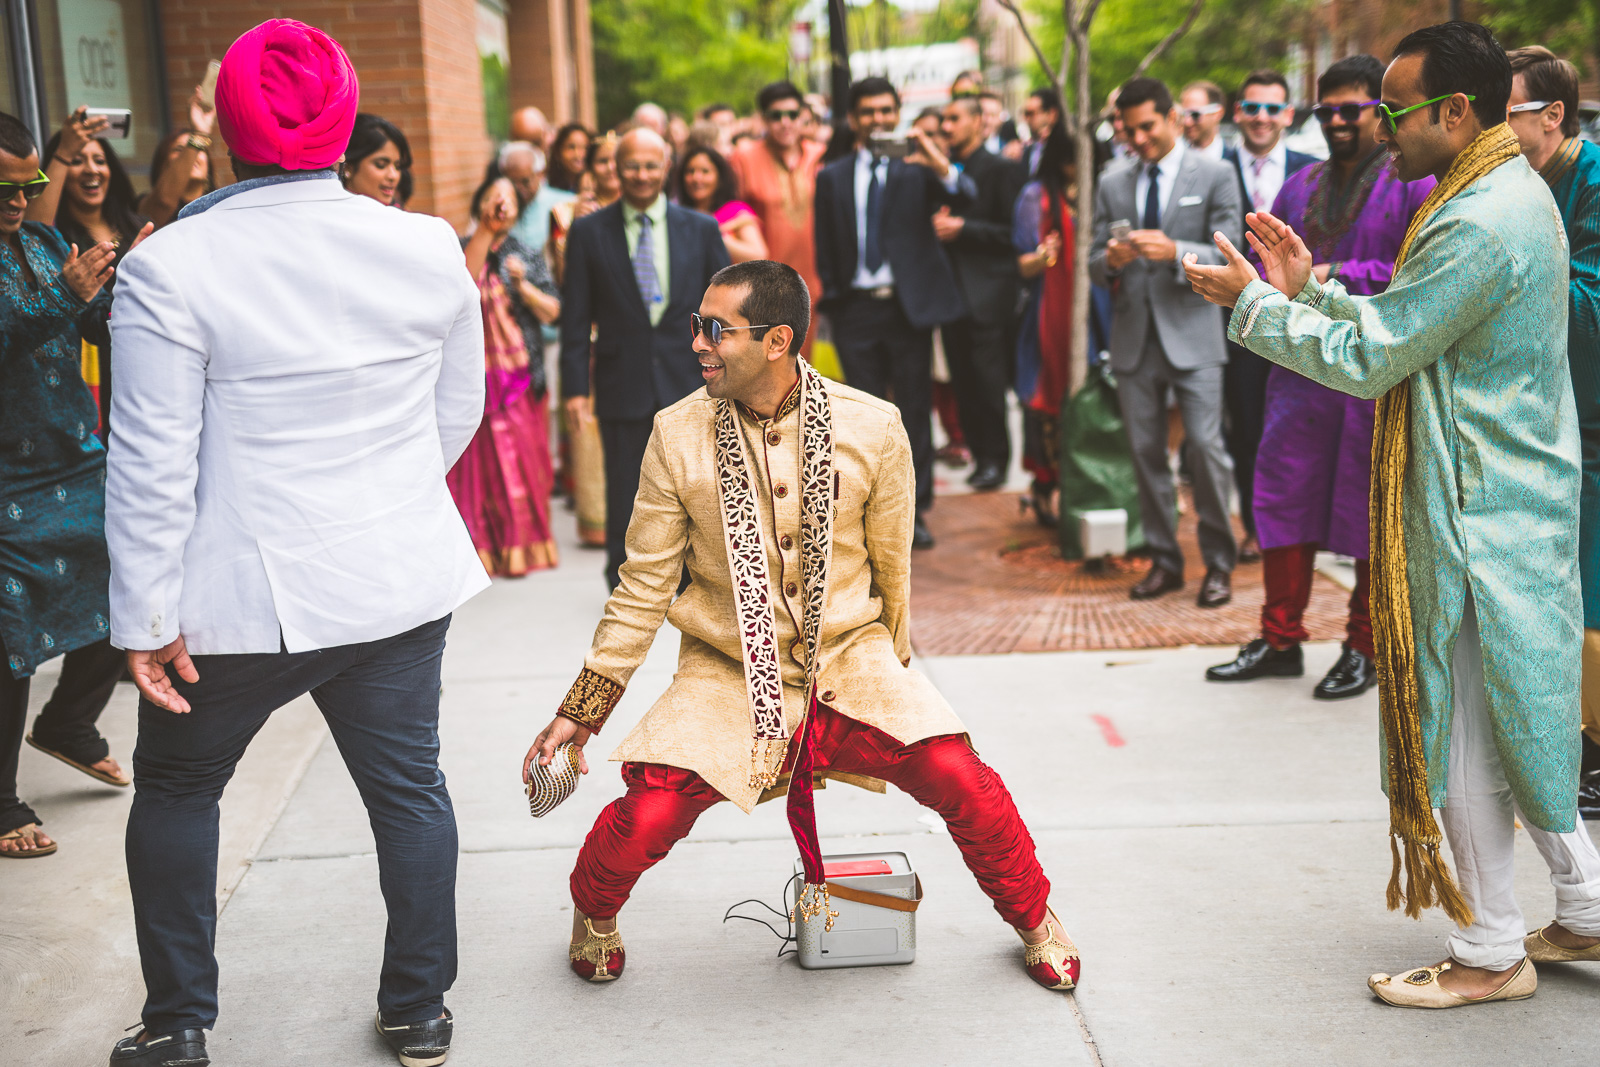 25 groom dancing duing barat - Jackie + Raj // Chicago Wedding Photography at Floating World Gallery